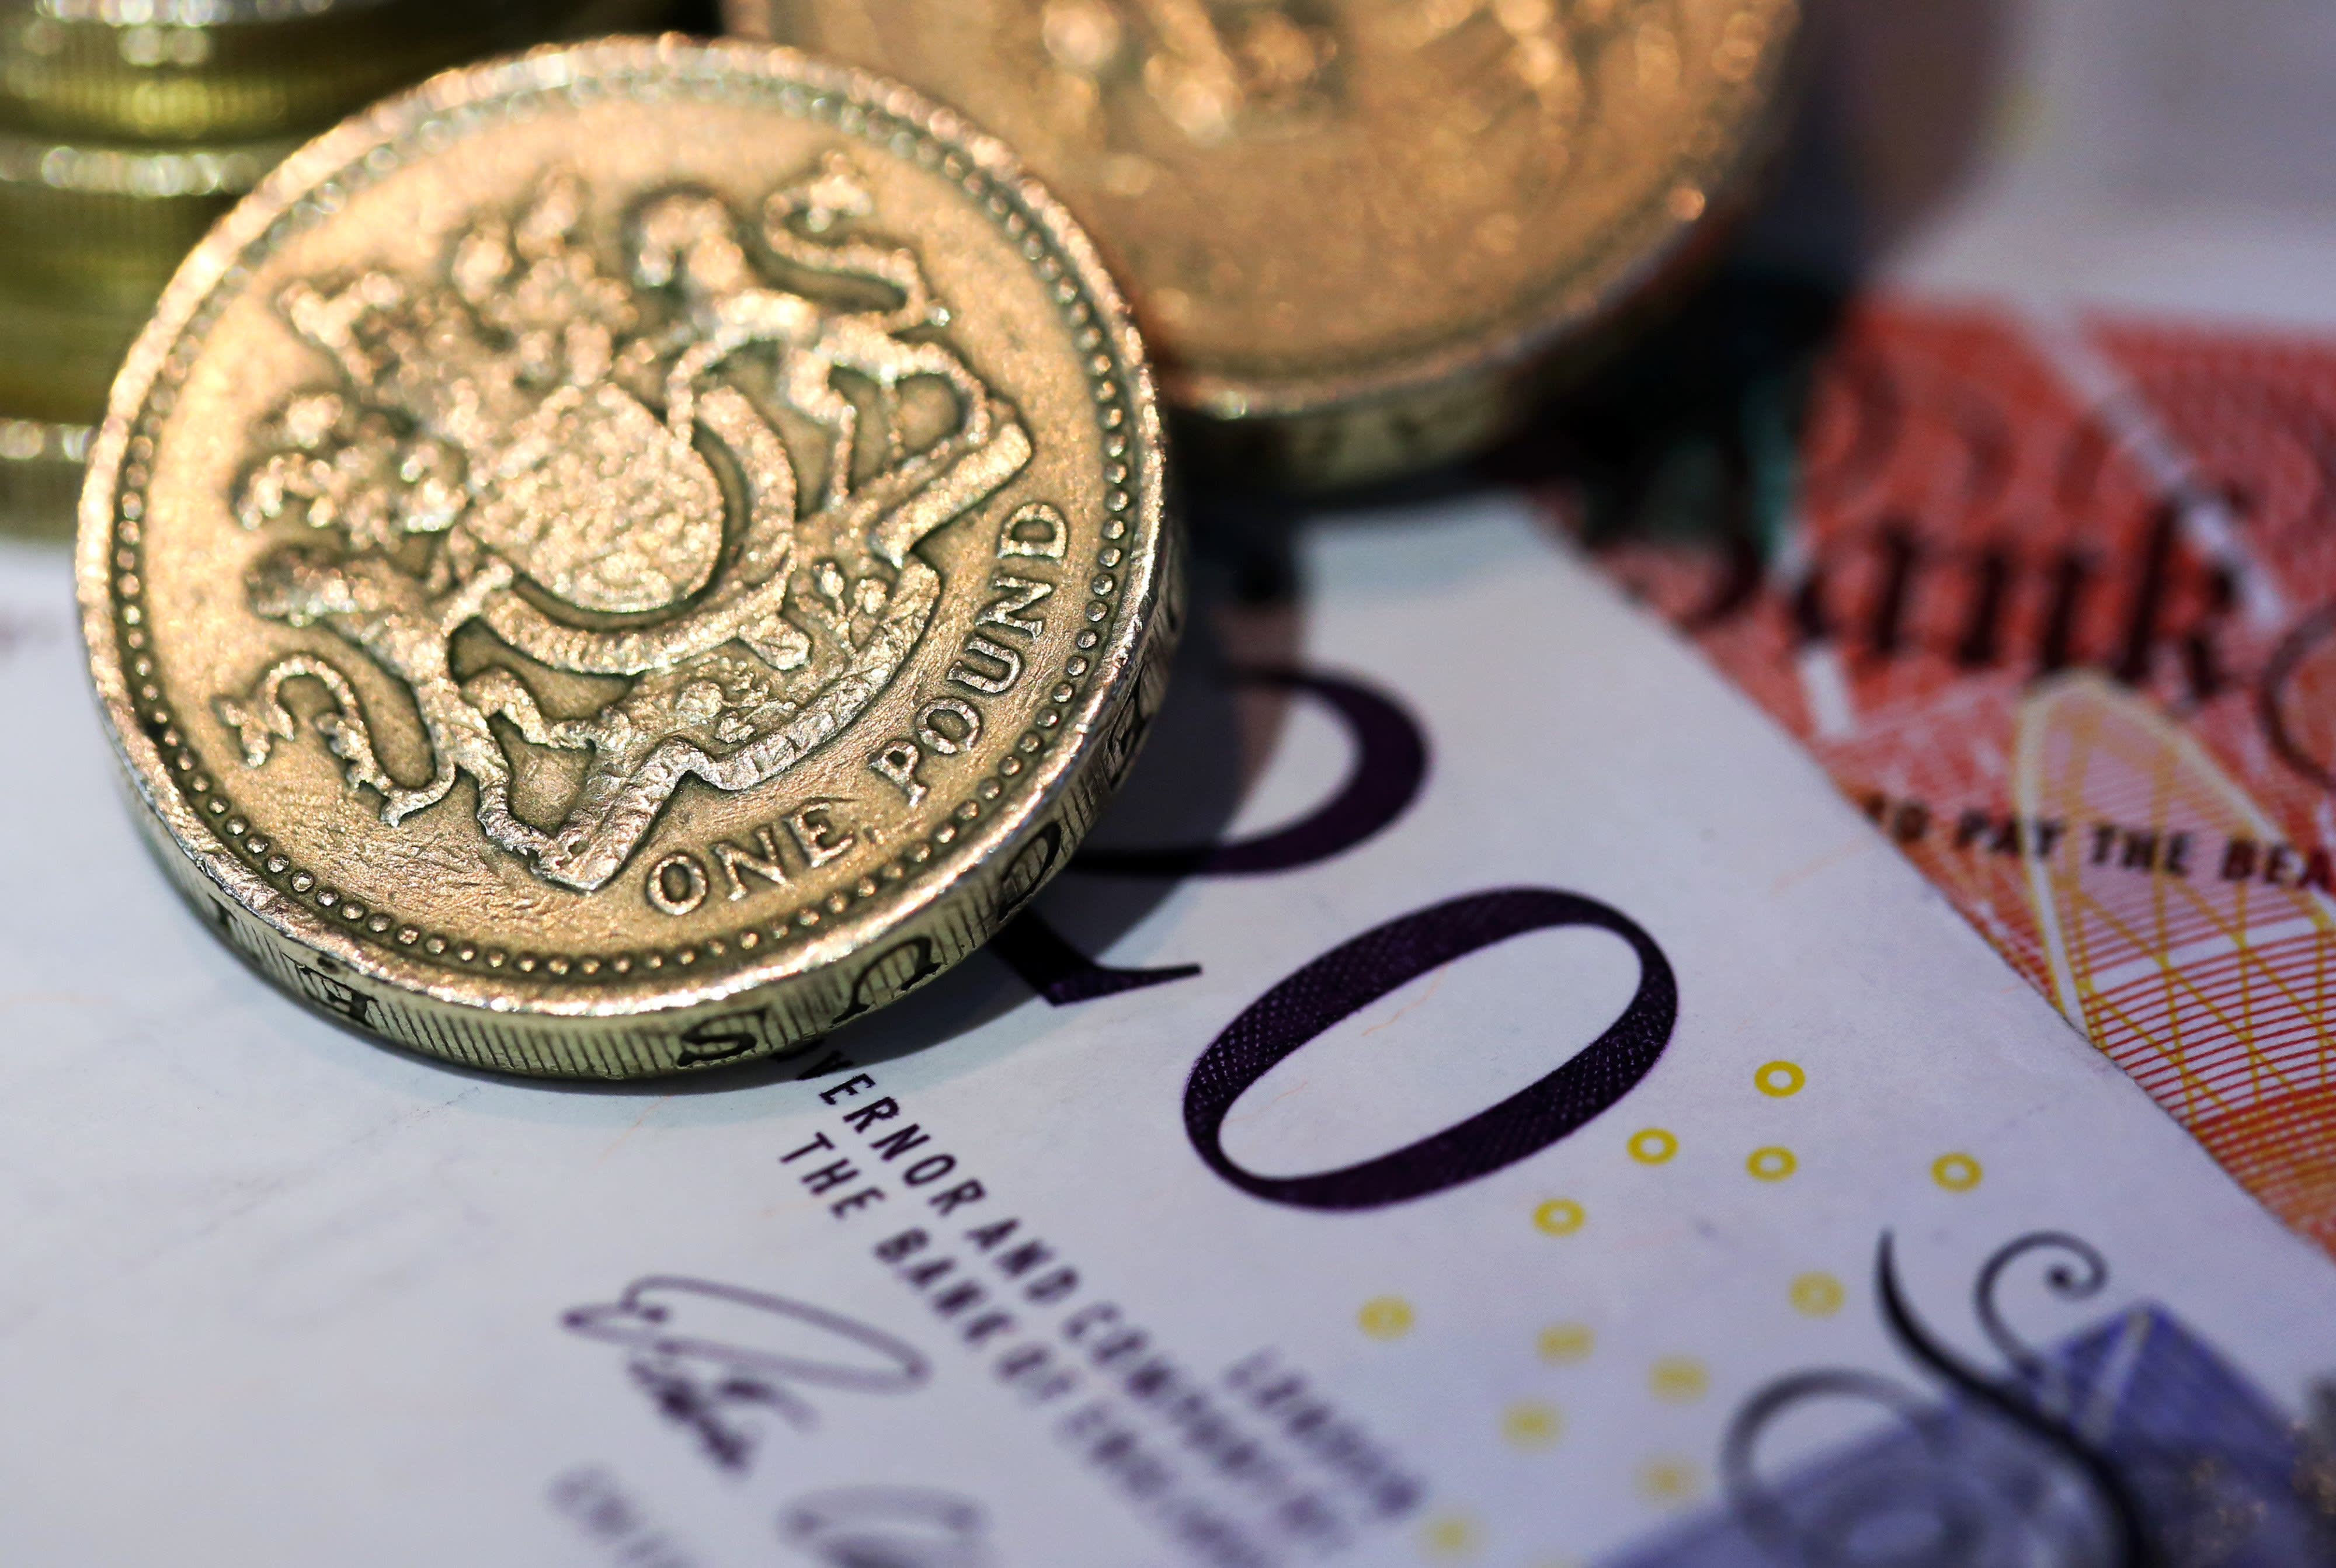 Equity release market tipped for £4bn+ 'rebound'